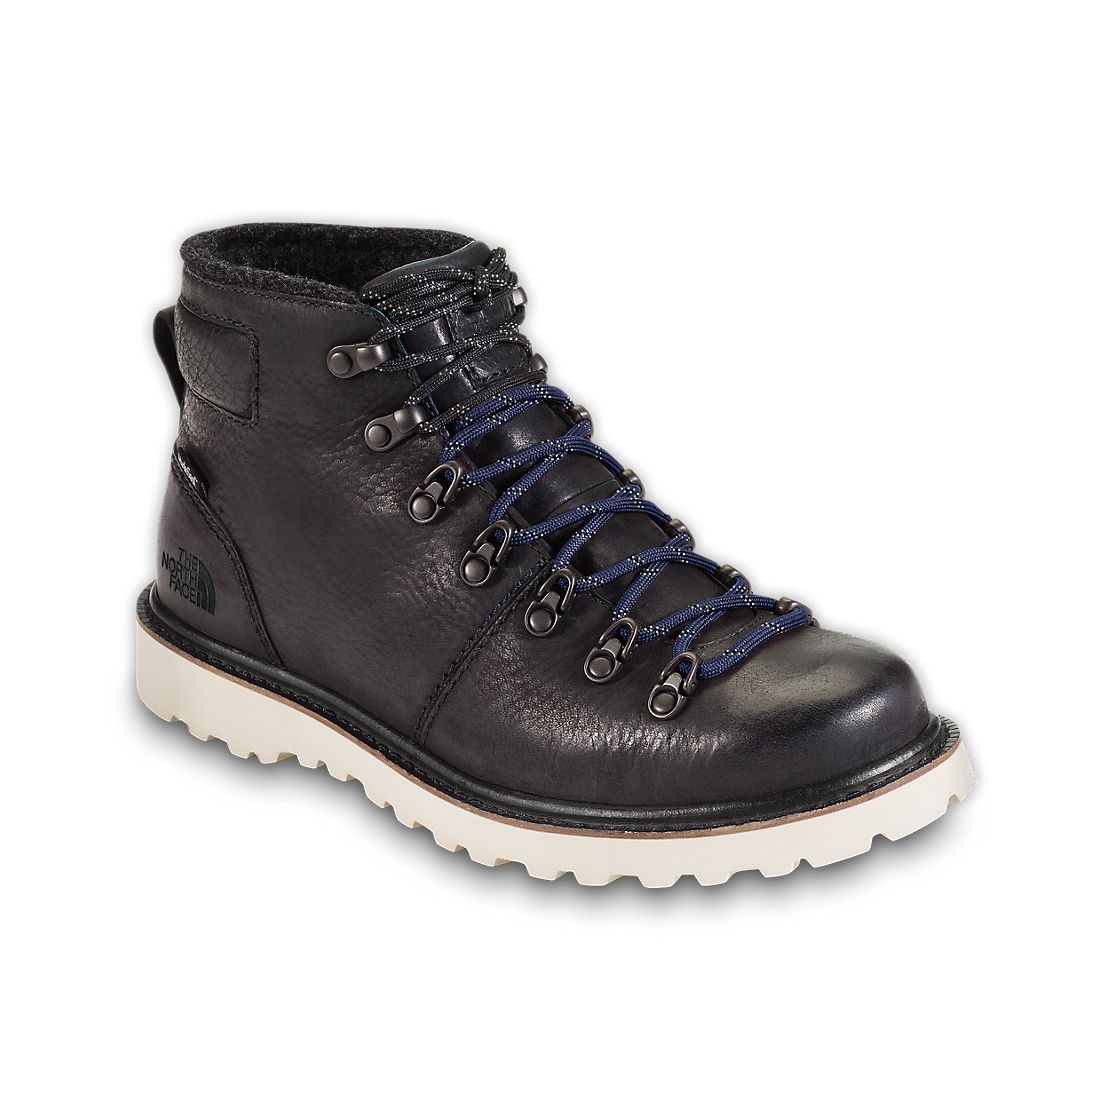 22ffc4938fc Ballard Boot. $150.00 | My Style in 2019 | Boots, Shoes, Winter boots